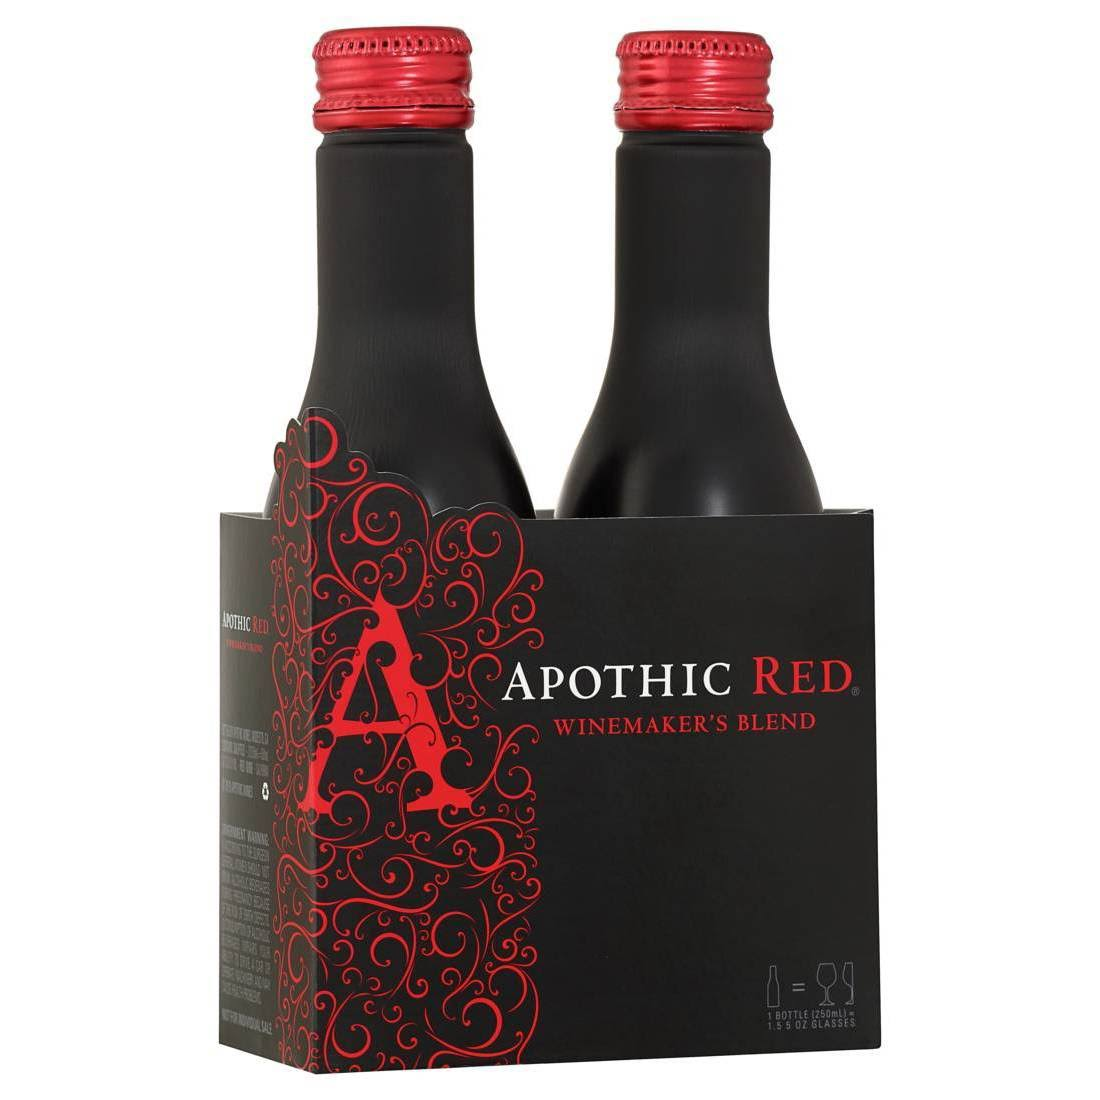 Apothic Red, Winemaker's Blend, California - 2 pack, 250 ml